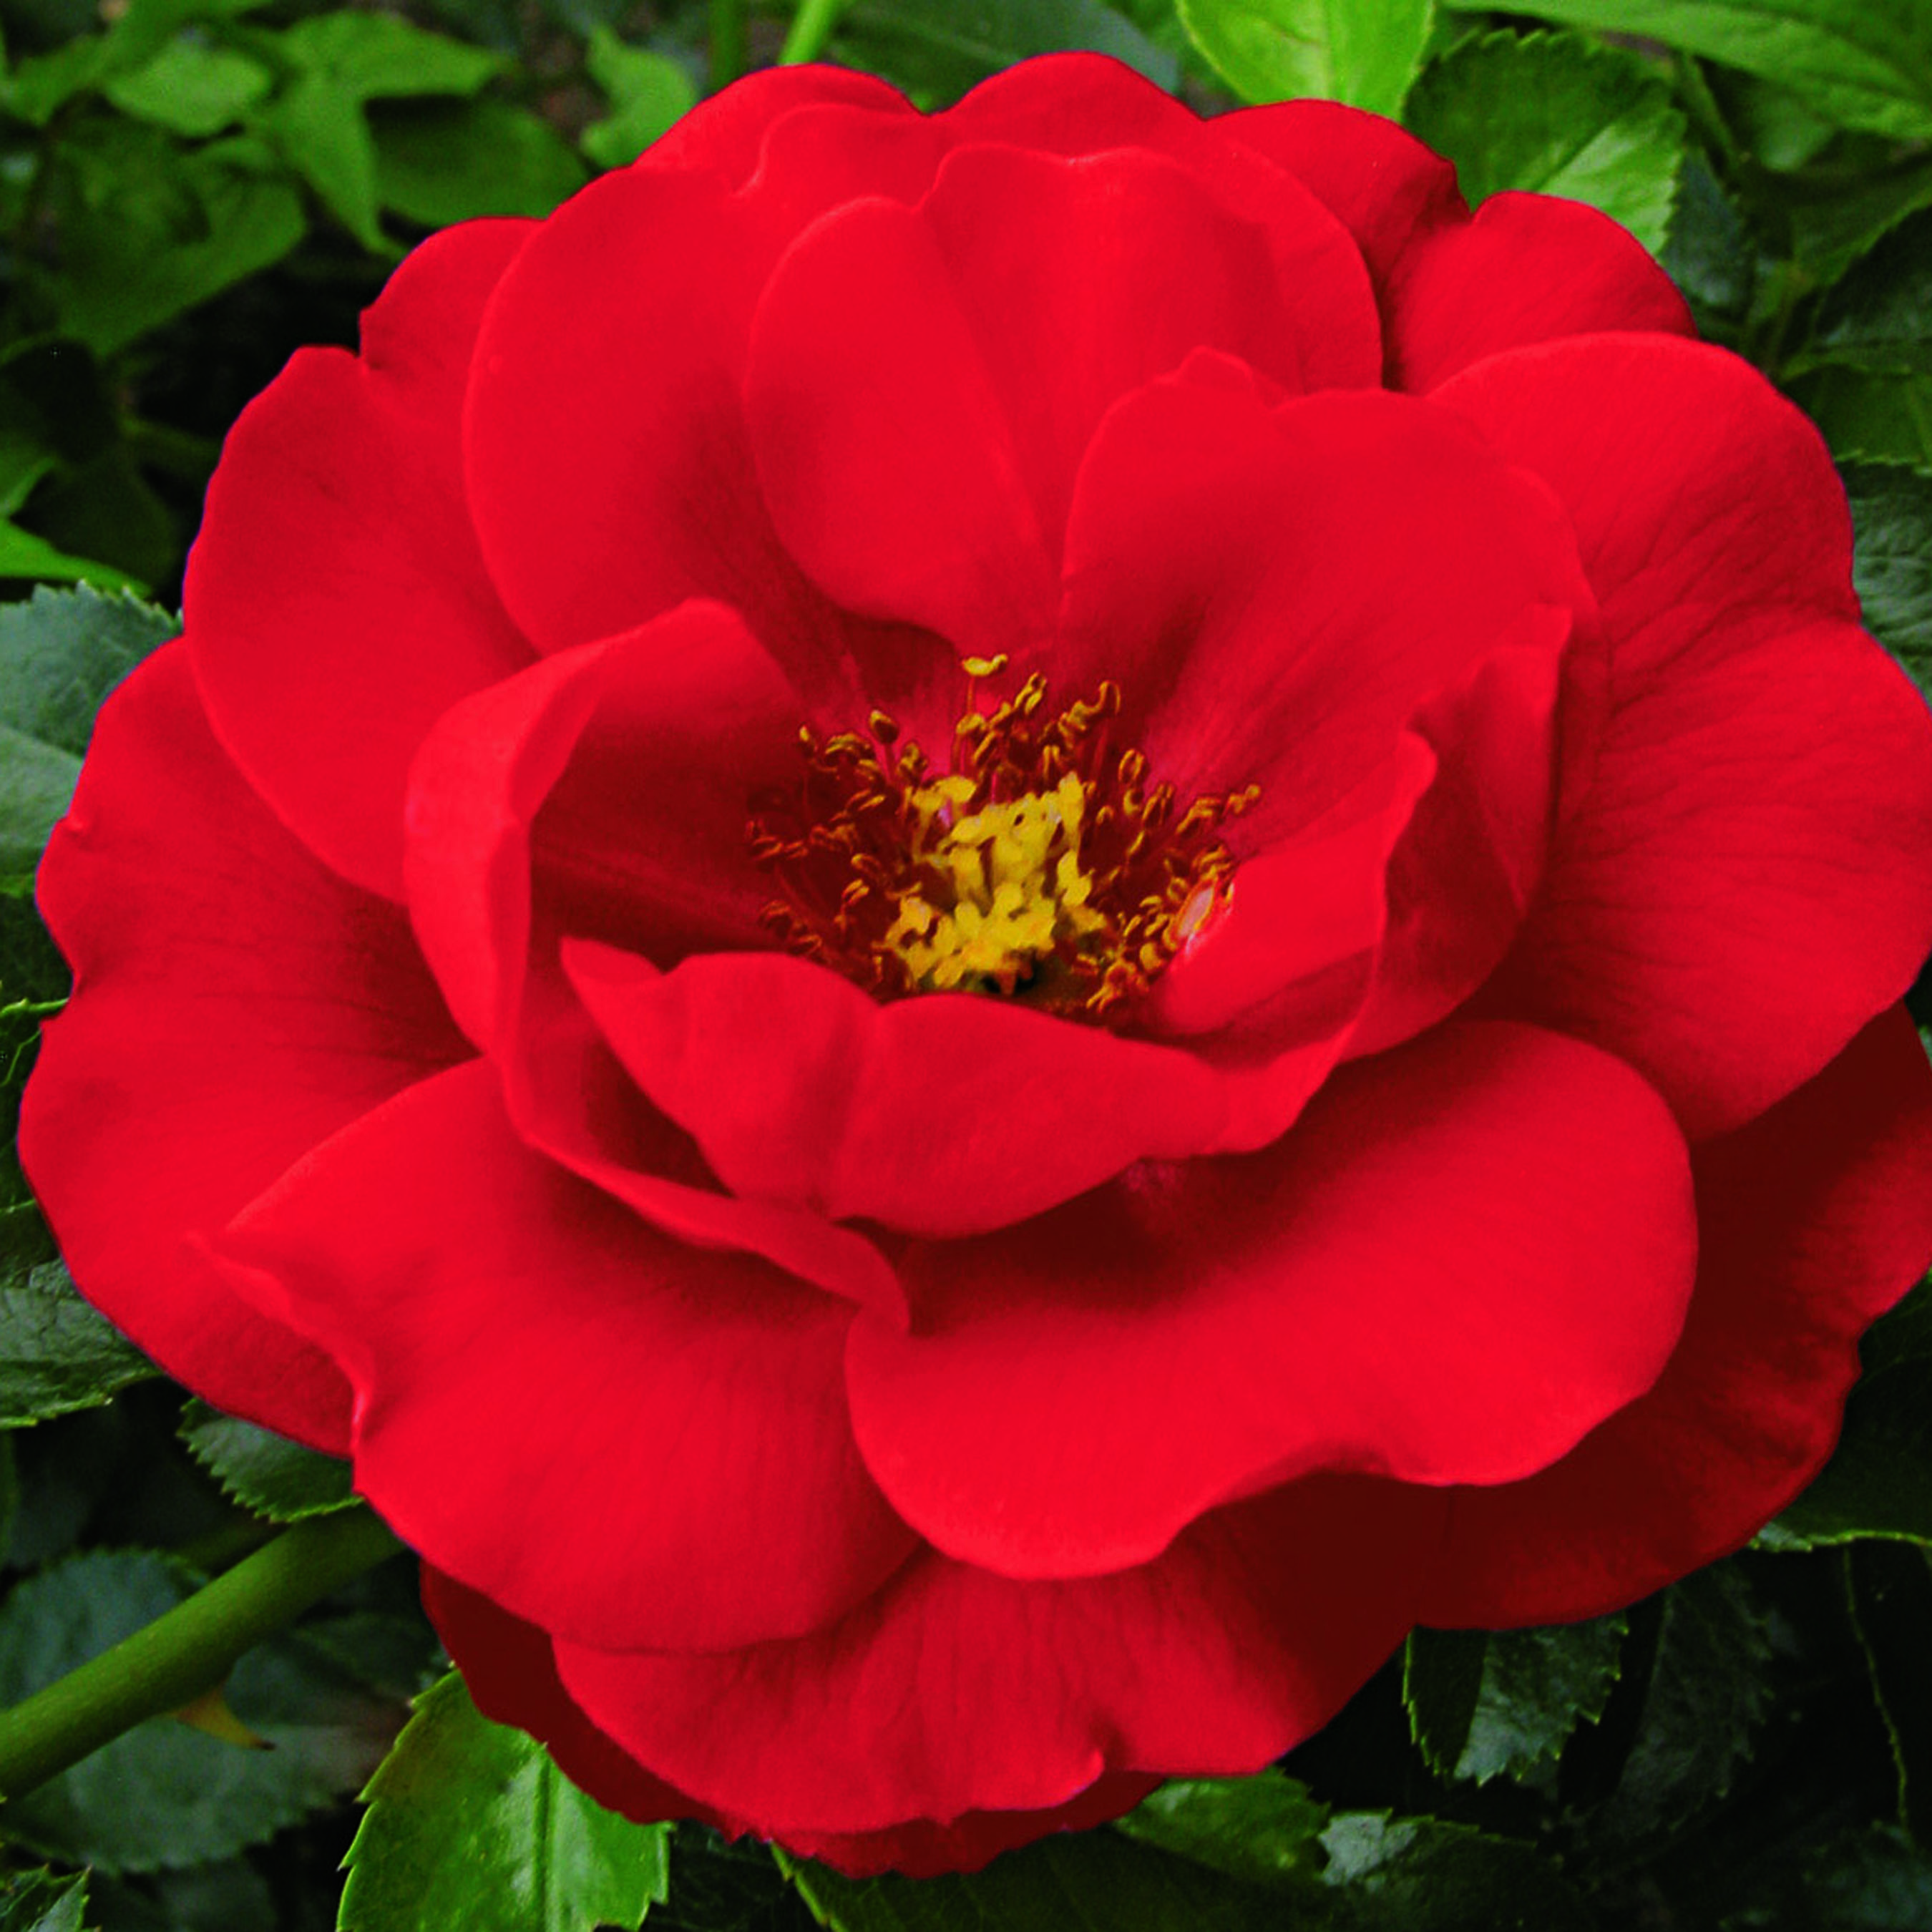 Seeing red: incorporating colour into your garden - Flower carpet Scarlet